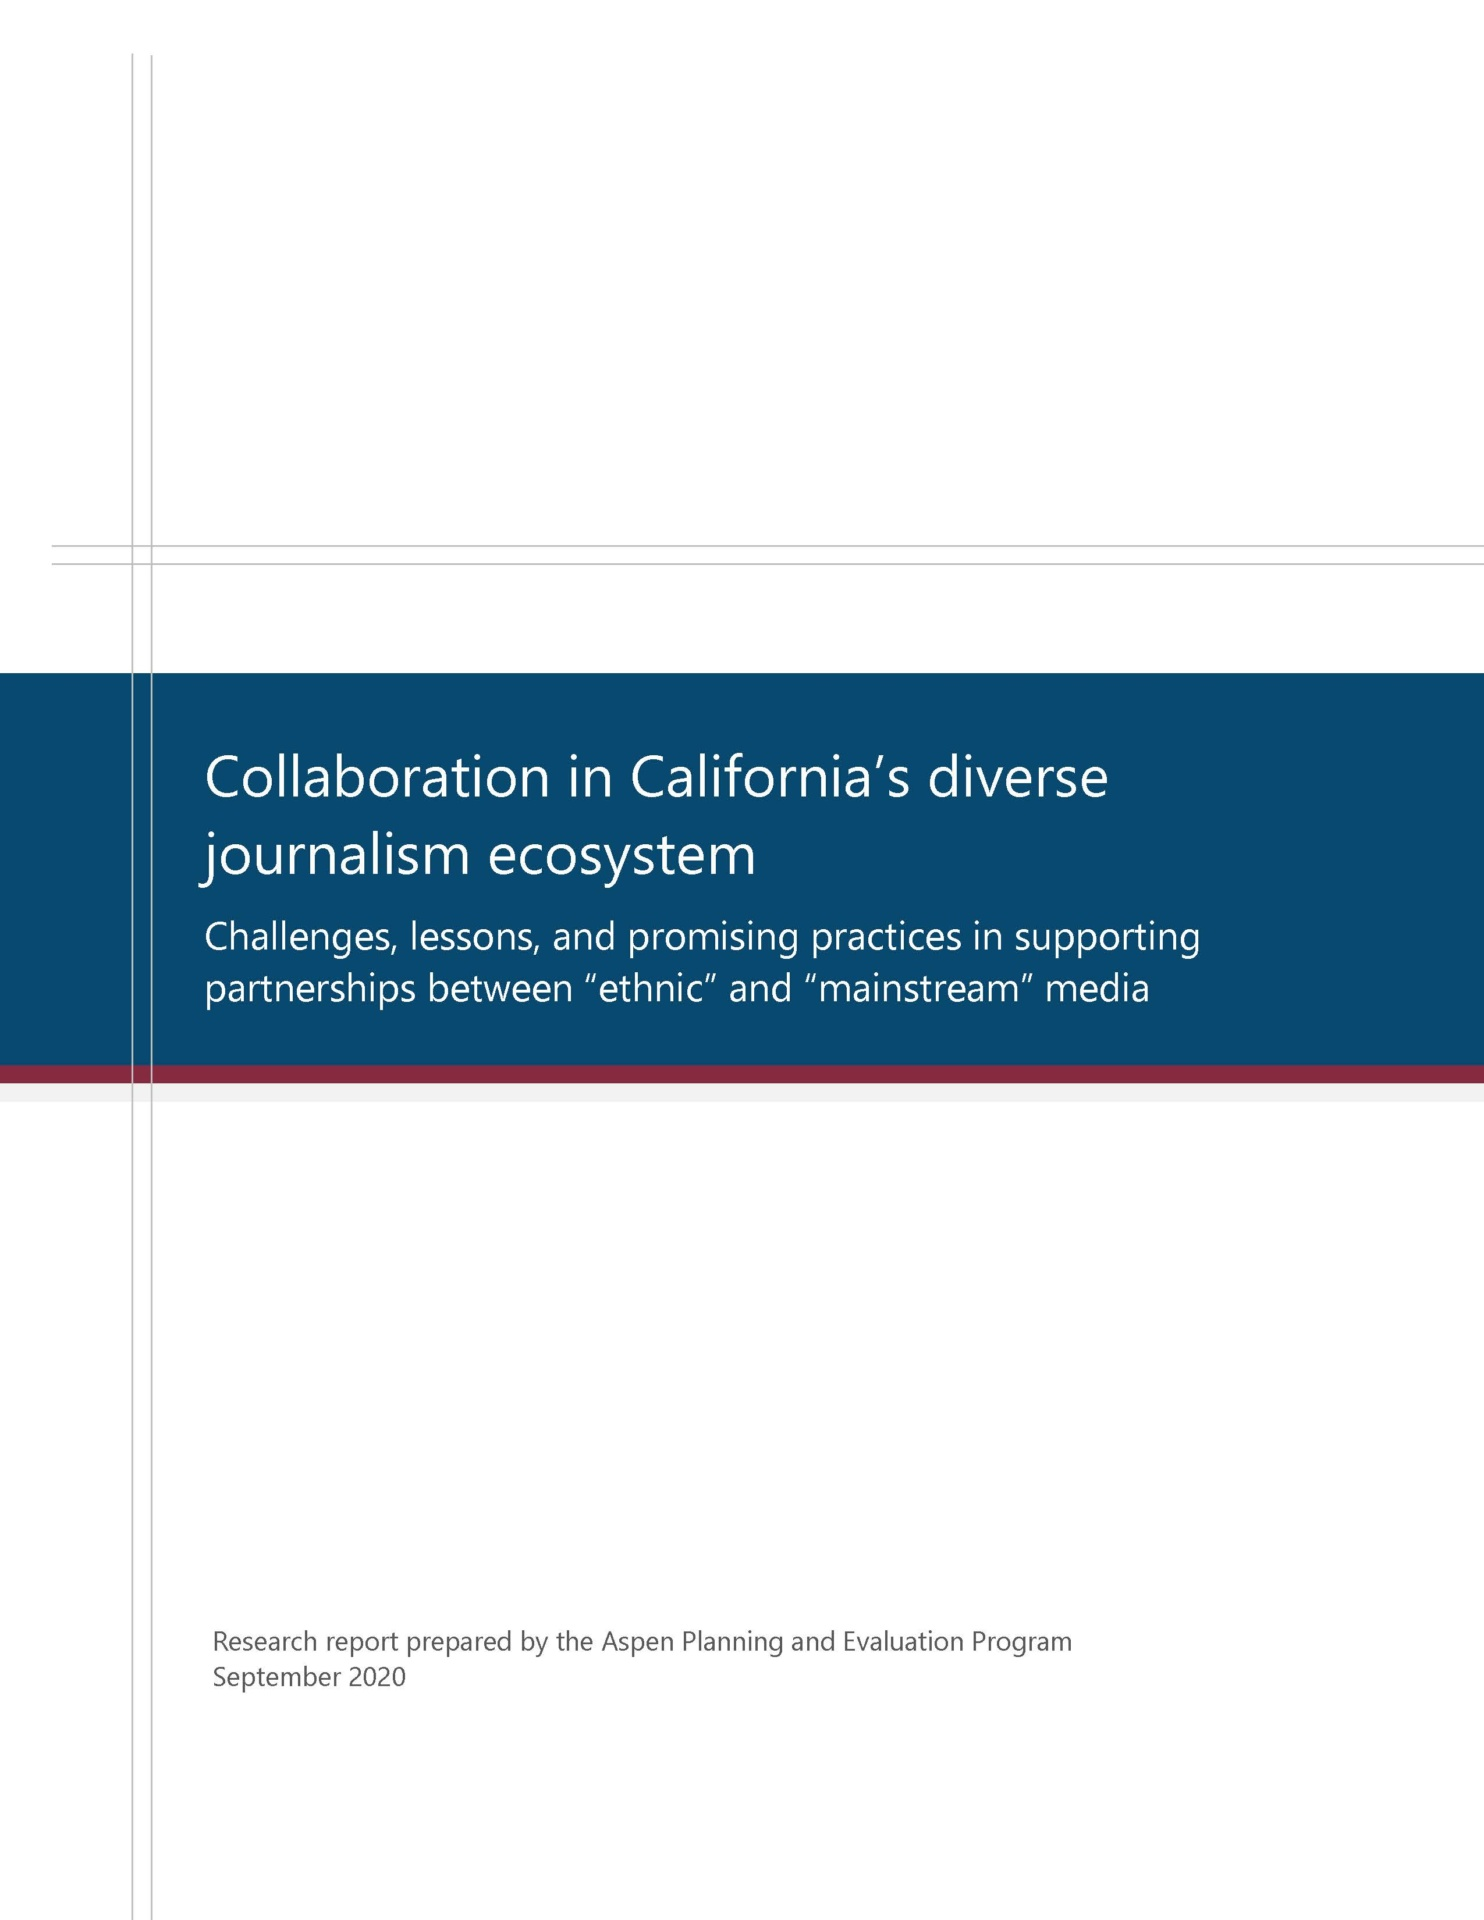 Collaboration in a diverse journalism ecosystem